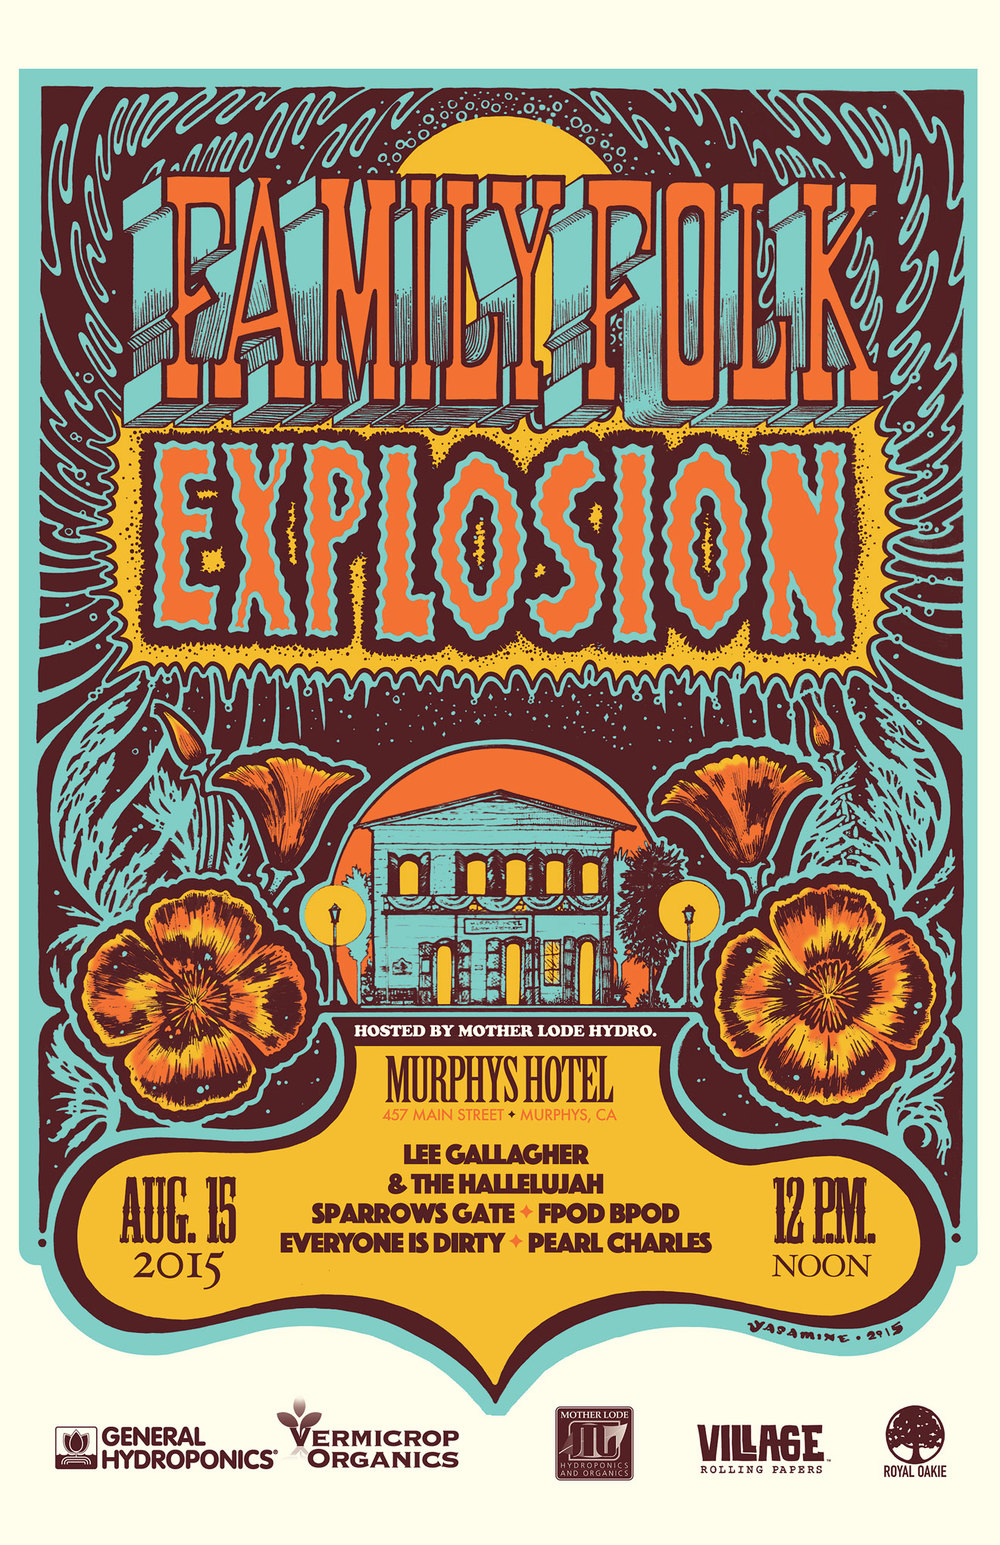 Festival Poster for Family Folk Explosion